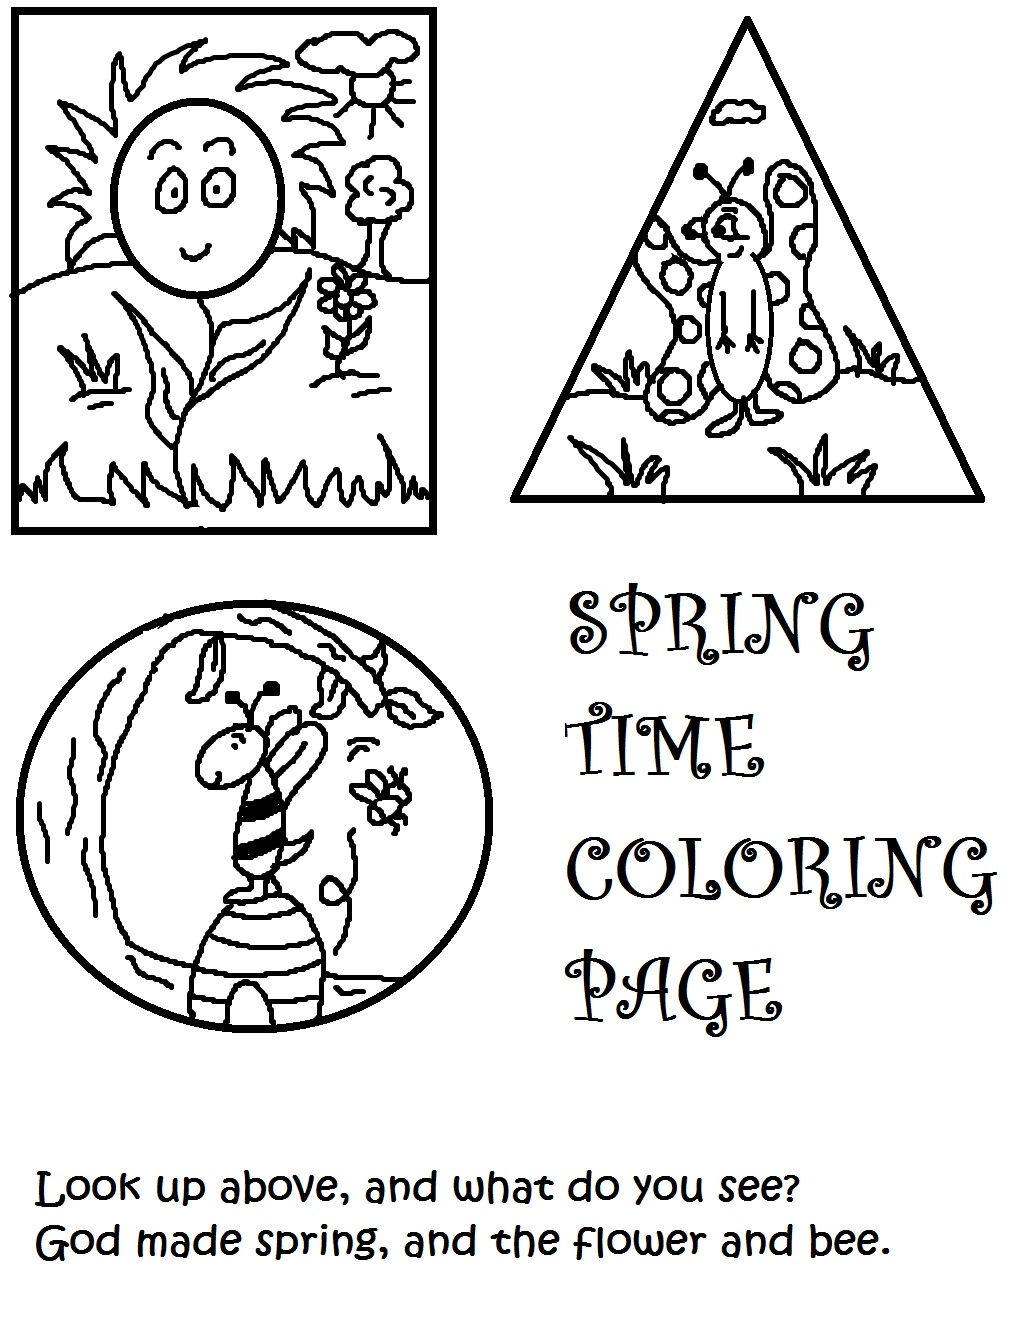 Spring coloring pages for church - Spring Coloring Pages